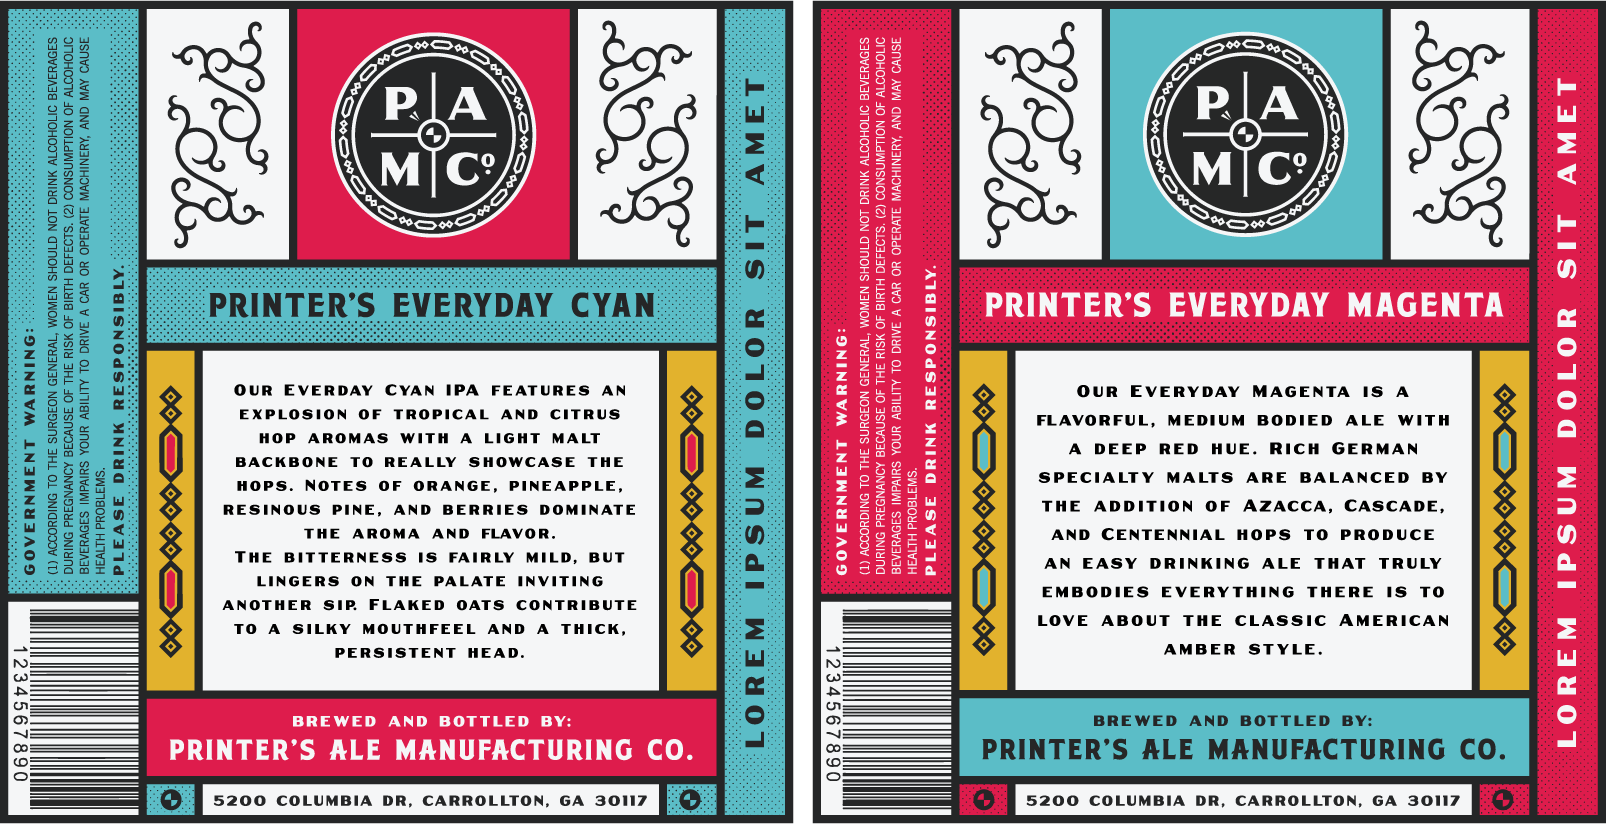 Printer's Ale Manufacturing Co.